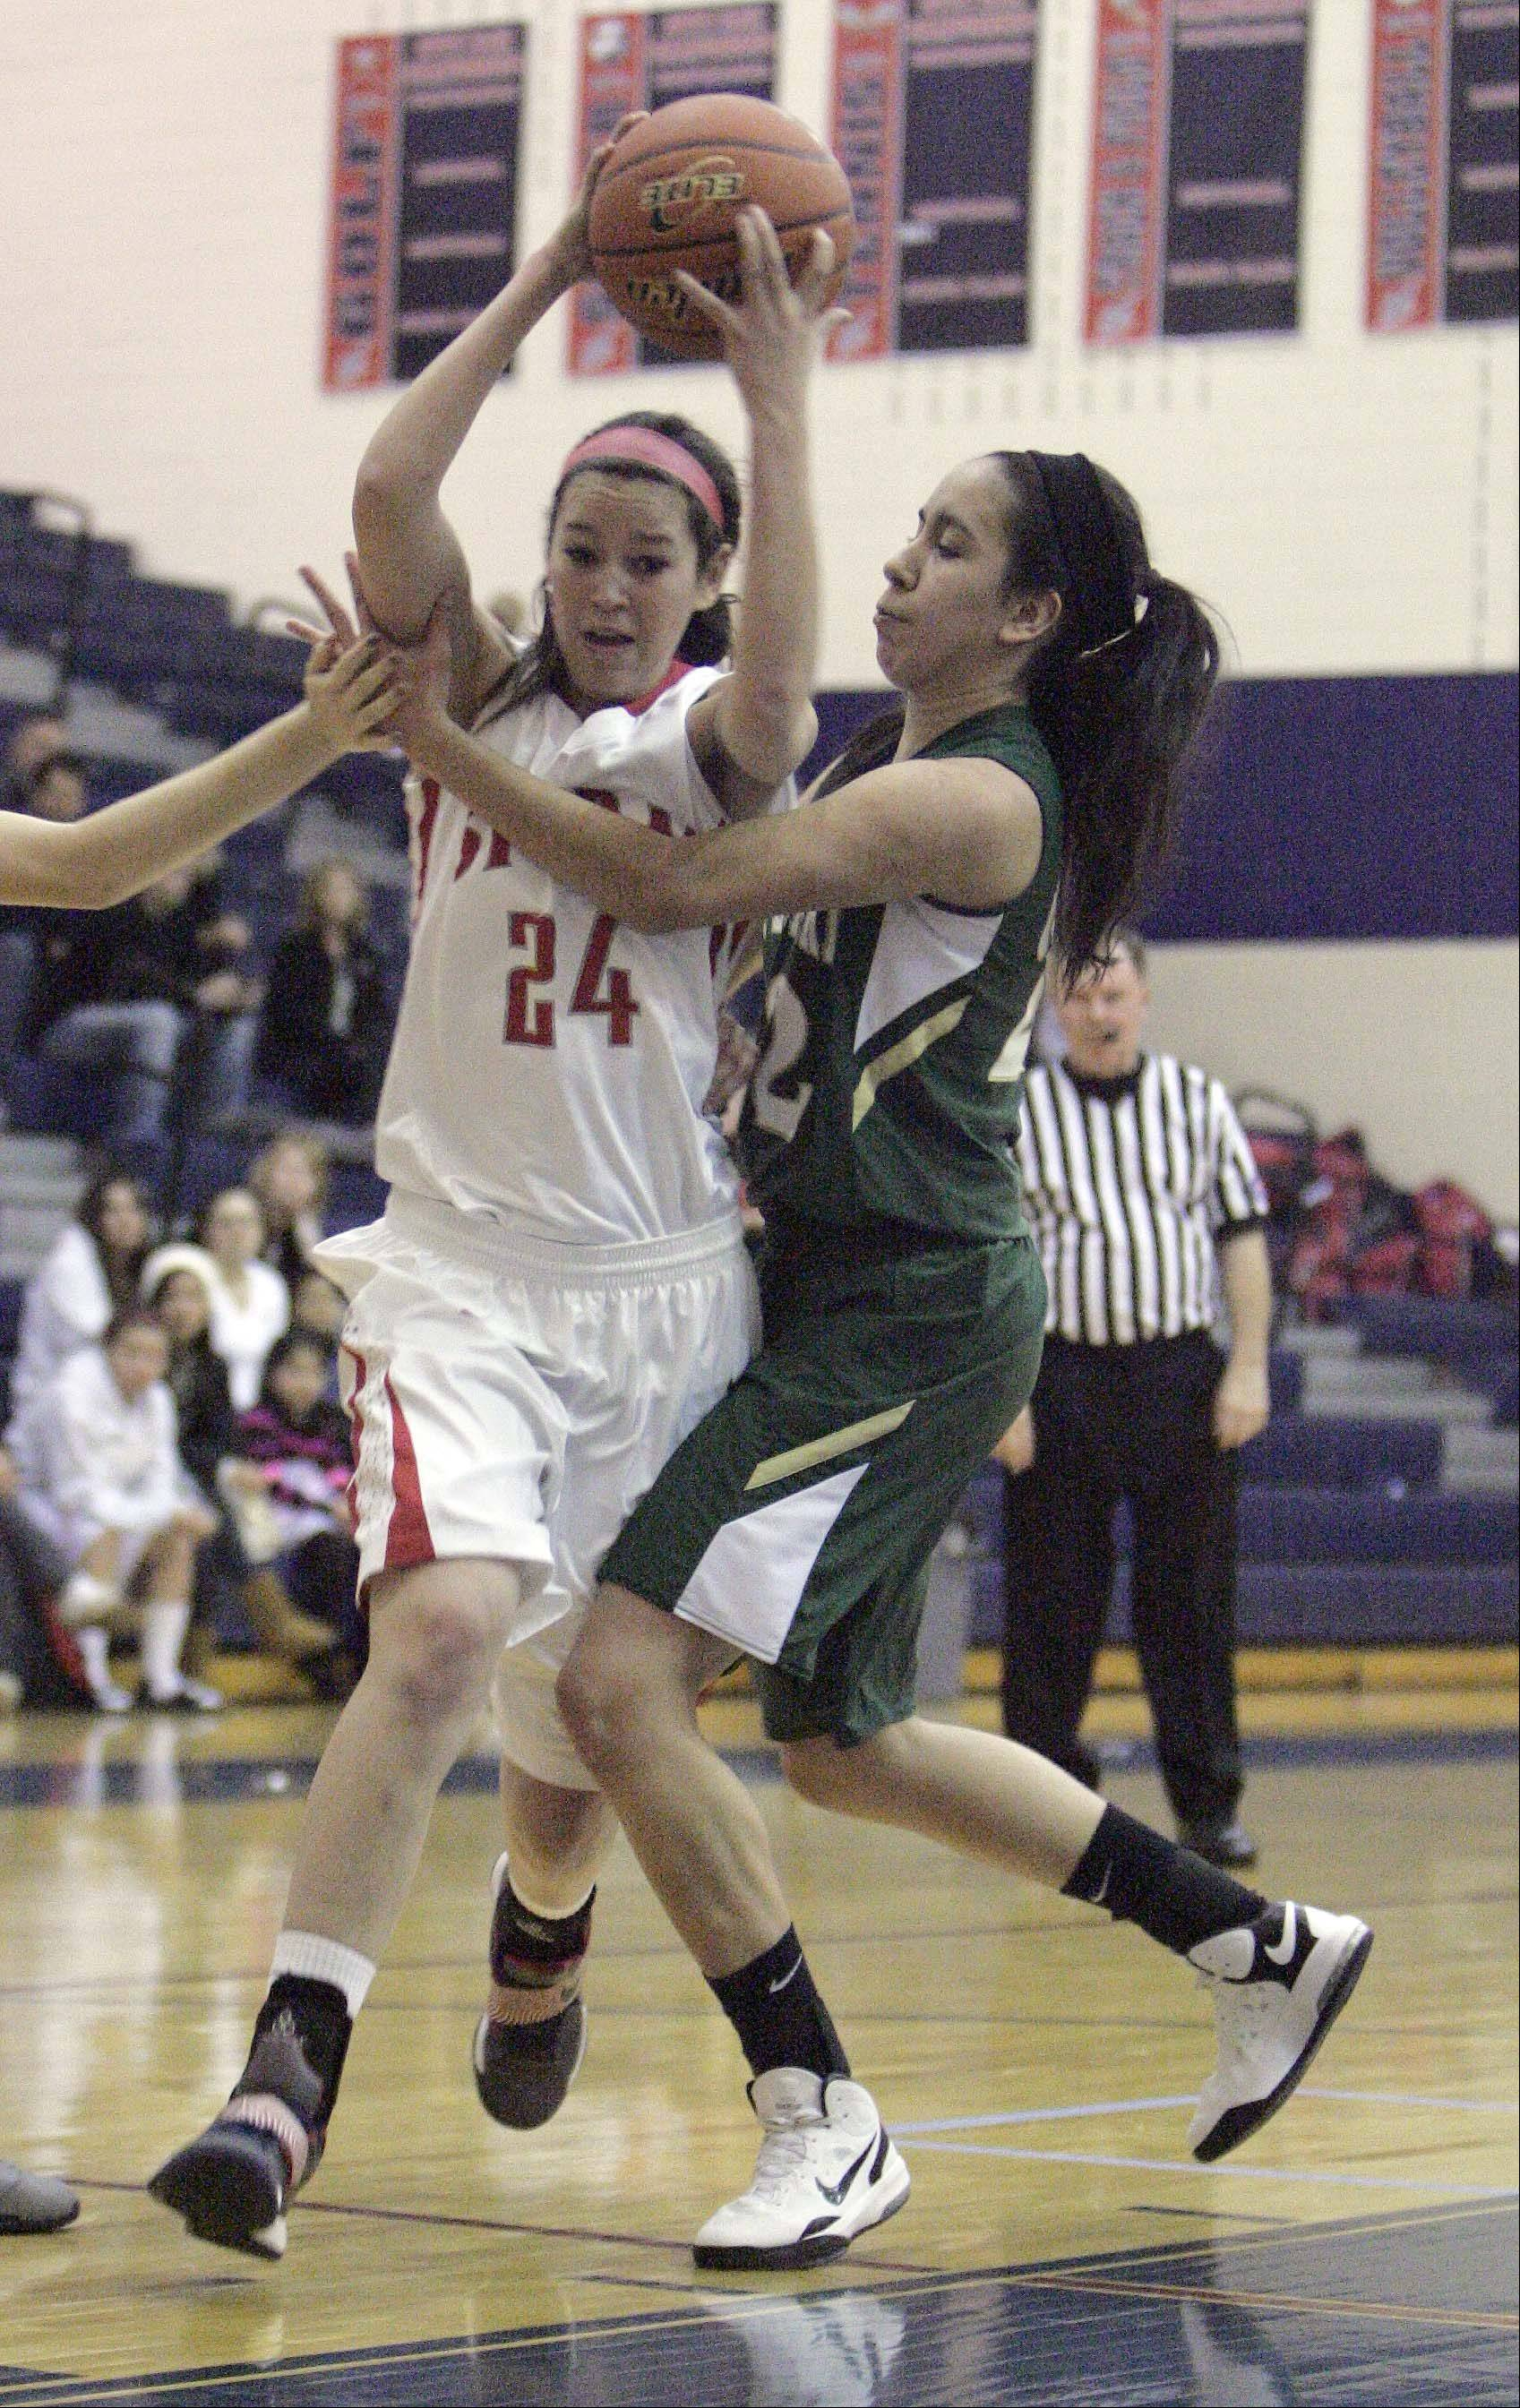 South Elgin�s Kennede Miller (24) goes to the hoop as St. Edward�s Clarissa Ramos defends Saturday at South Elgin.